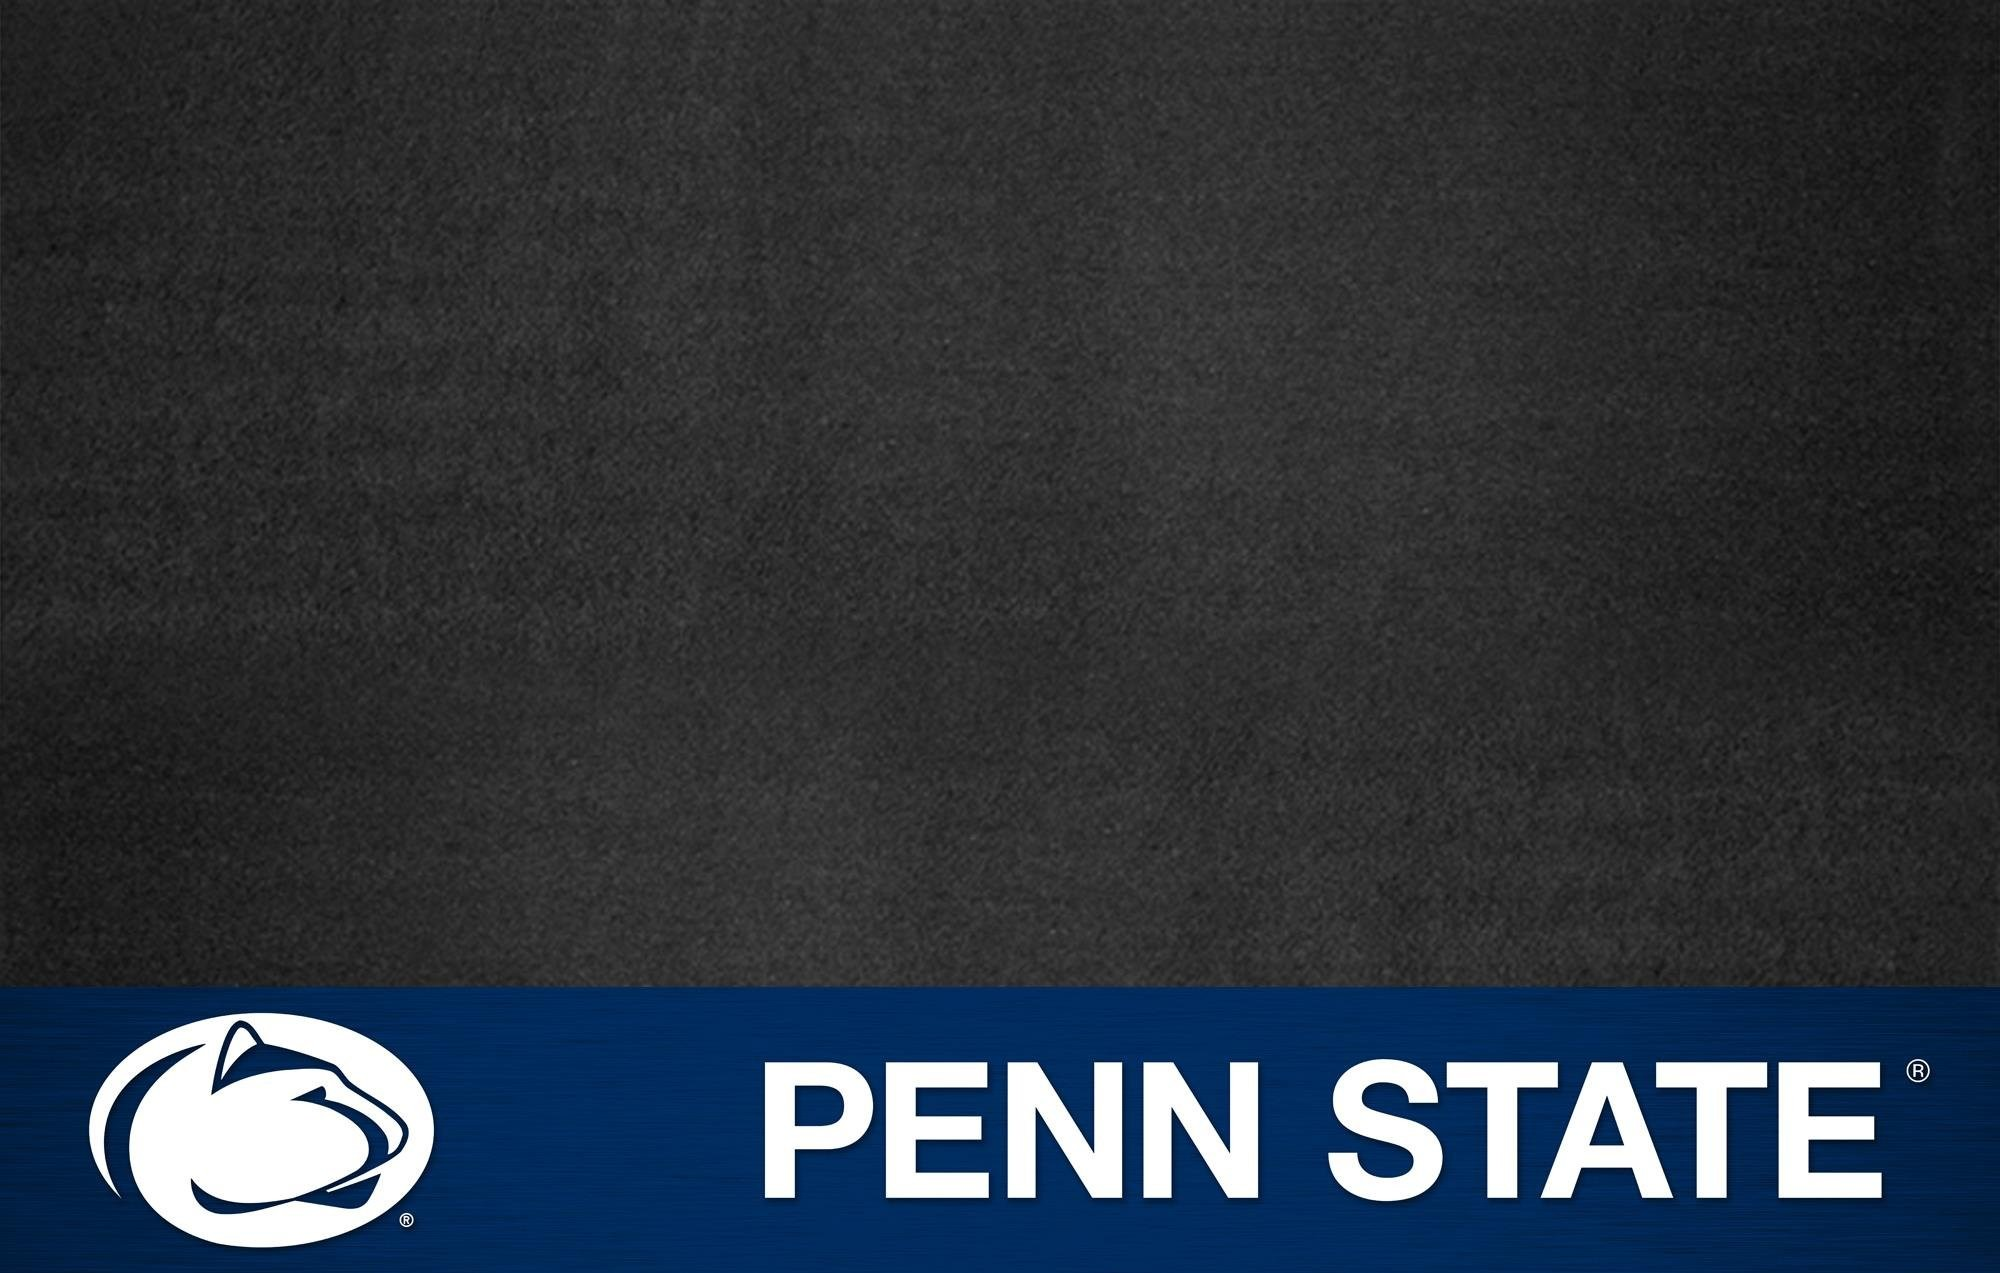 PENN STATE NITTANY LIONS college football wallpaper   .